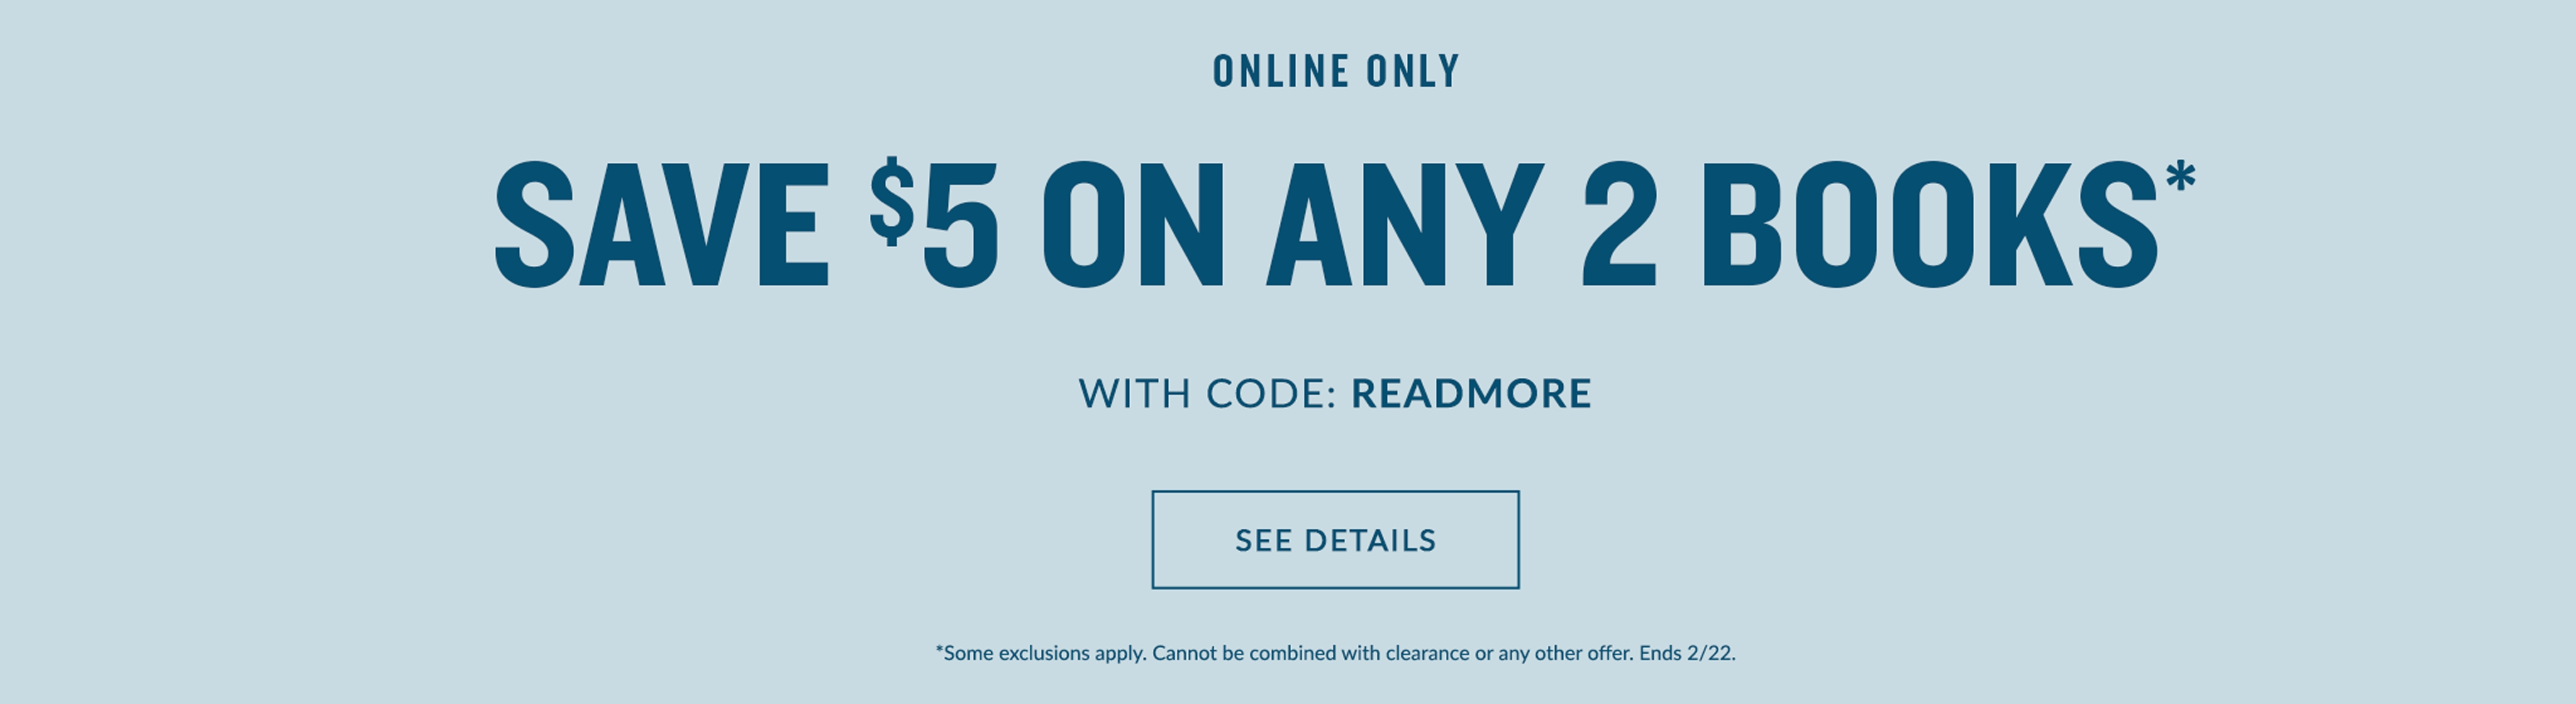 Coupon Codes And Deals | Barnes & Noble® Calendar 2019 Barnes And Noble